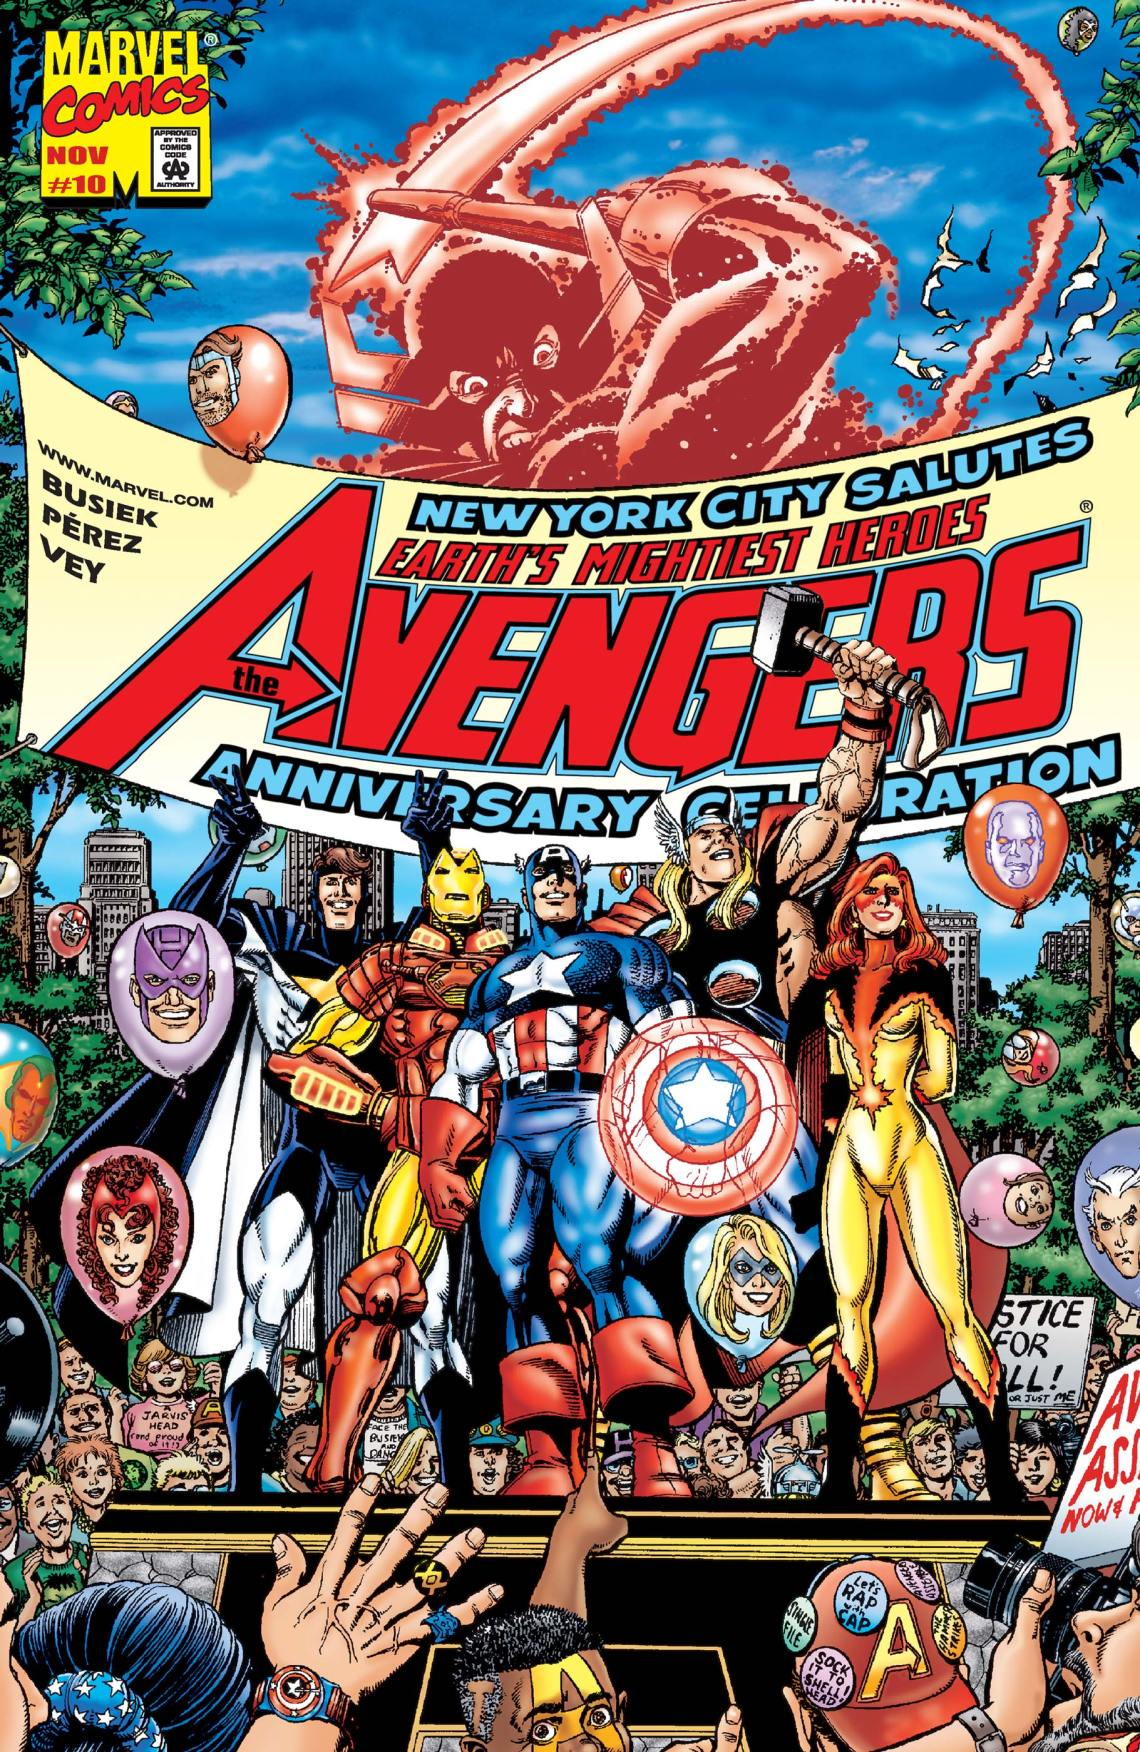 Avengers (1998) #10 | Comic Issues | Marvel